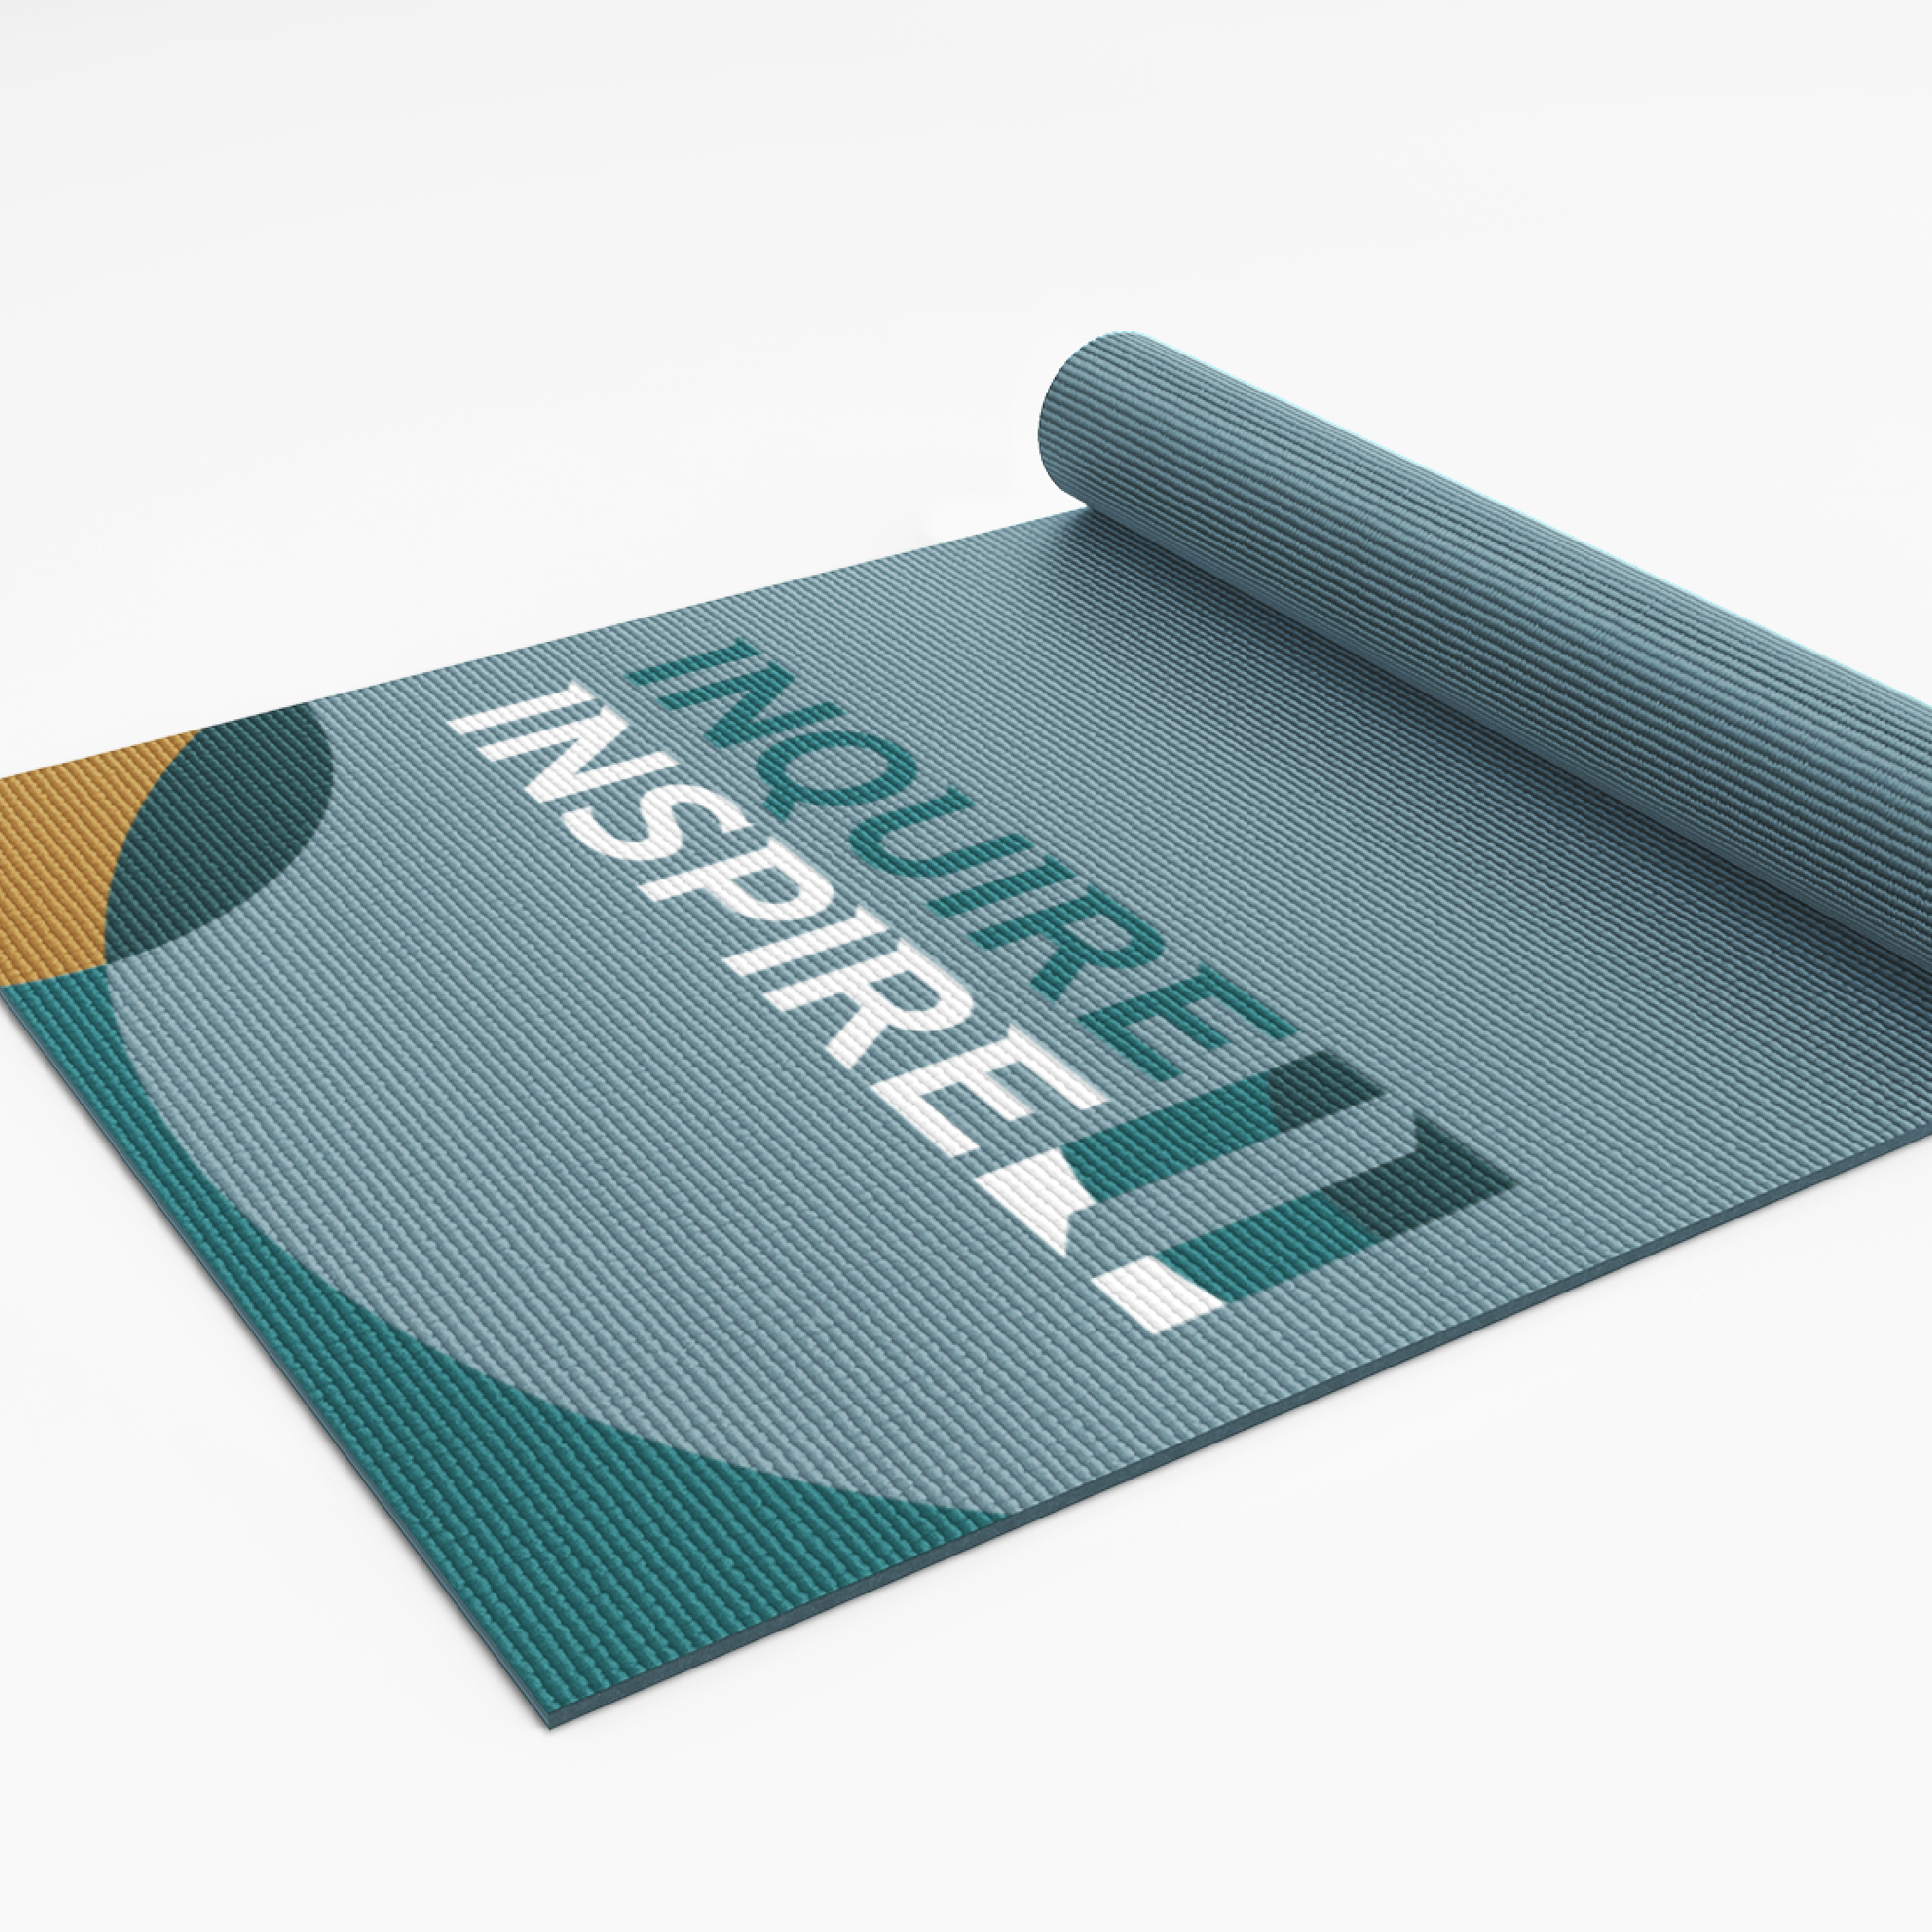 Branding created for Inquire 2 Inspire by VZNCY